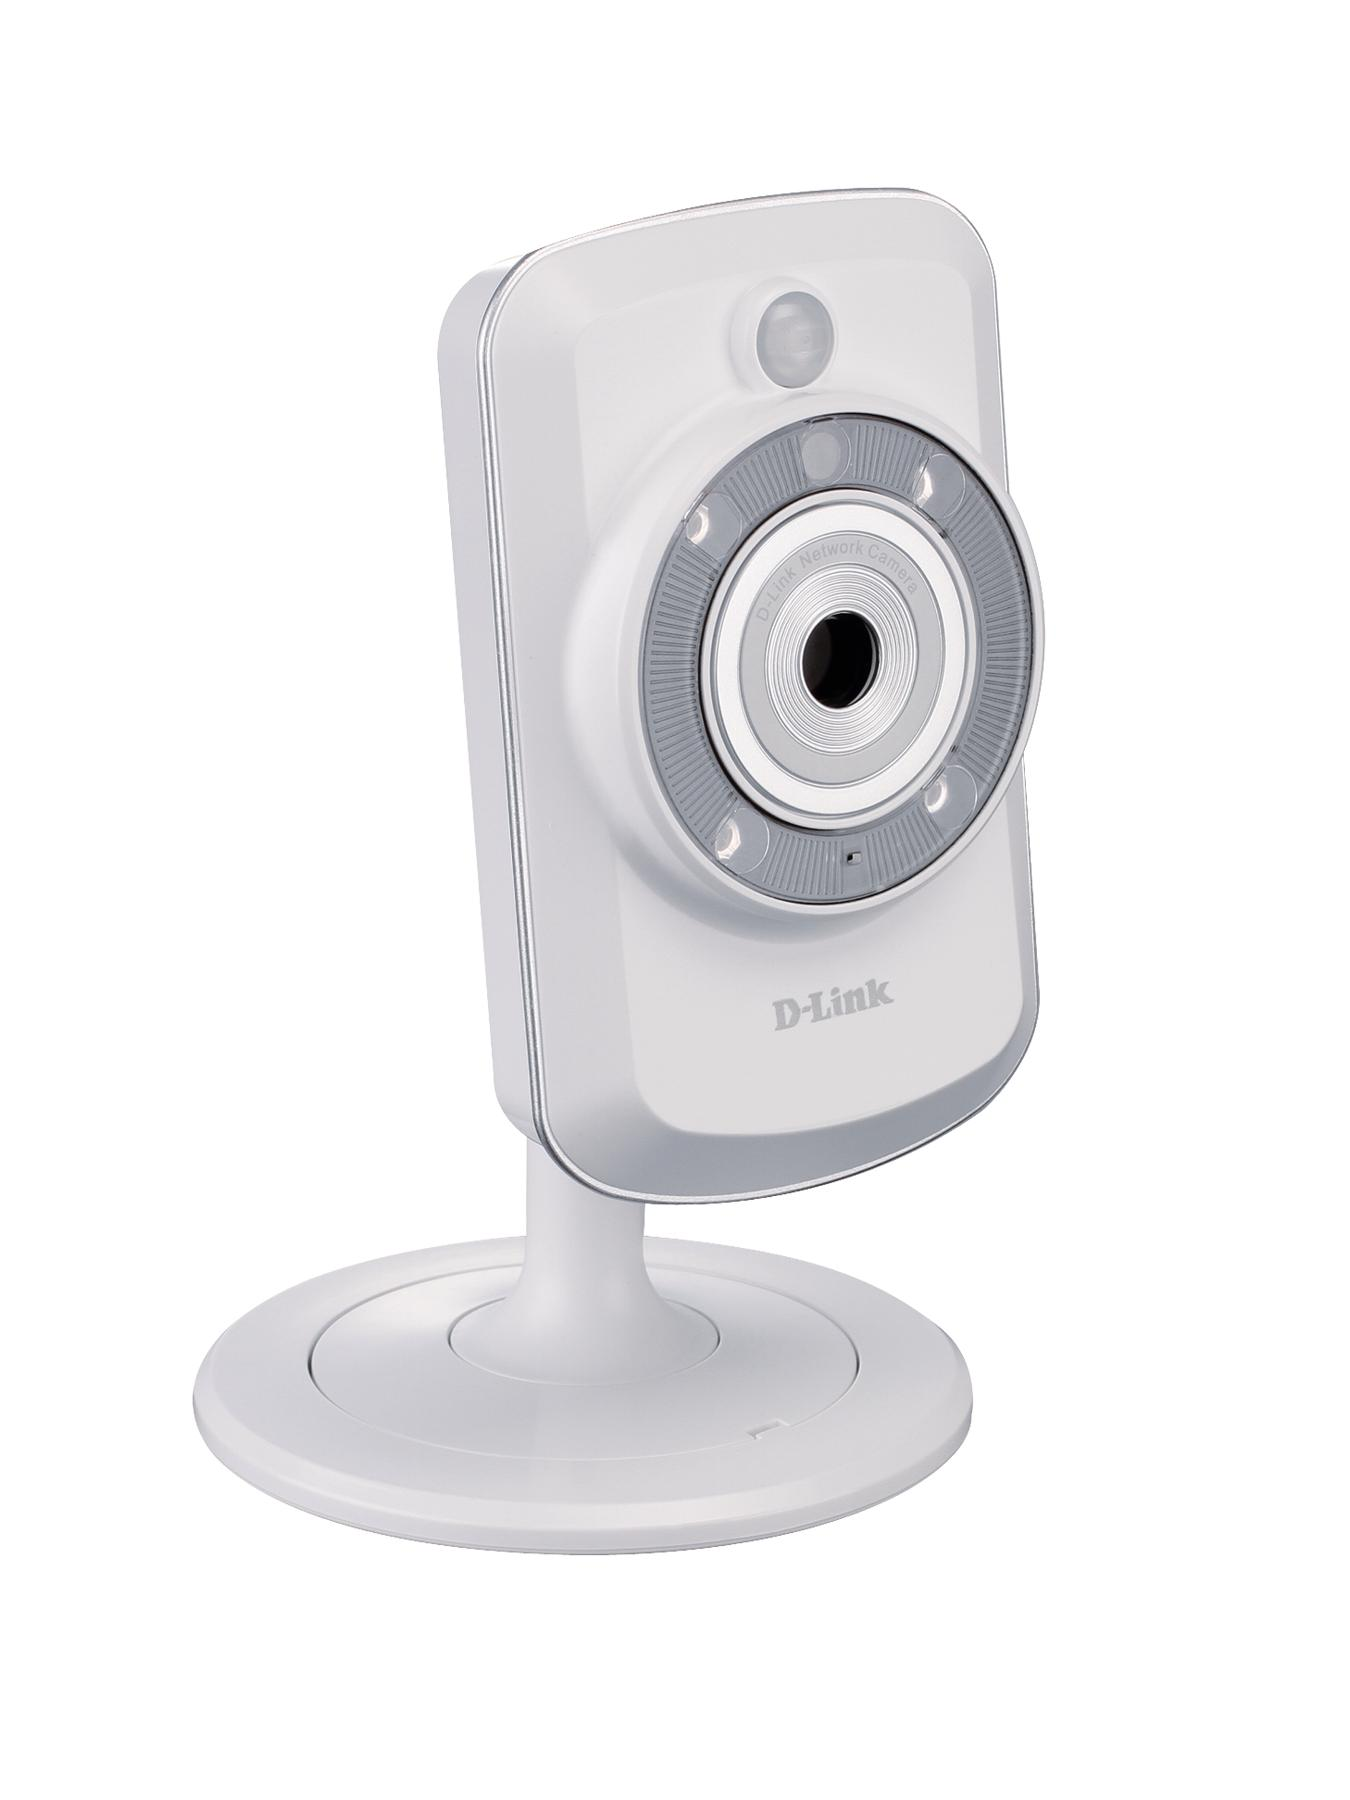 D-Link DCS-942L Wireless Day and Night Home Network Camera with mydlink